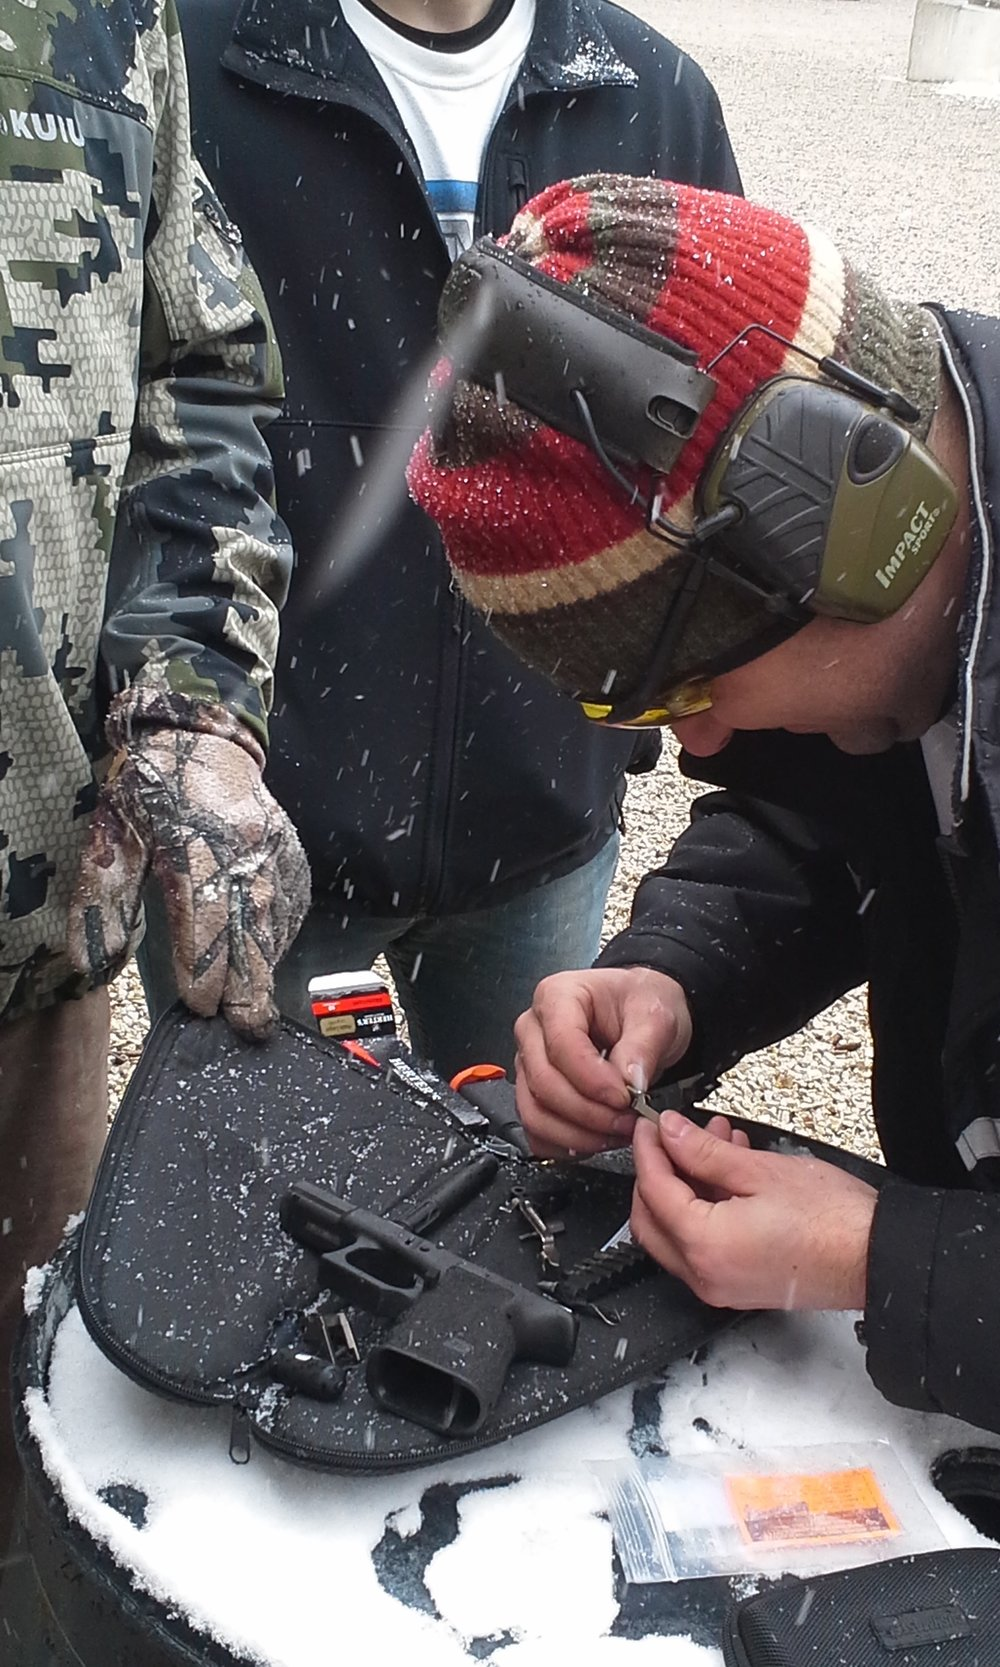 THE SUPER GUYS FROM MIDWEST GUN WORKS JUMP INTO ACTION AND PROVIDE EMERGENCY SERVICES TO A GLOCK.  NICELY DONE!    (MARCH 2017 ARPC-IDPA)